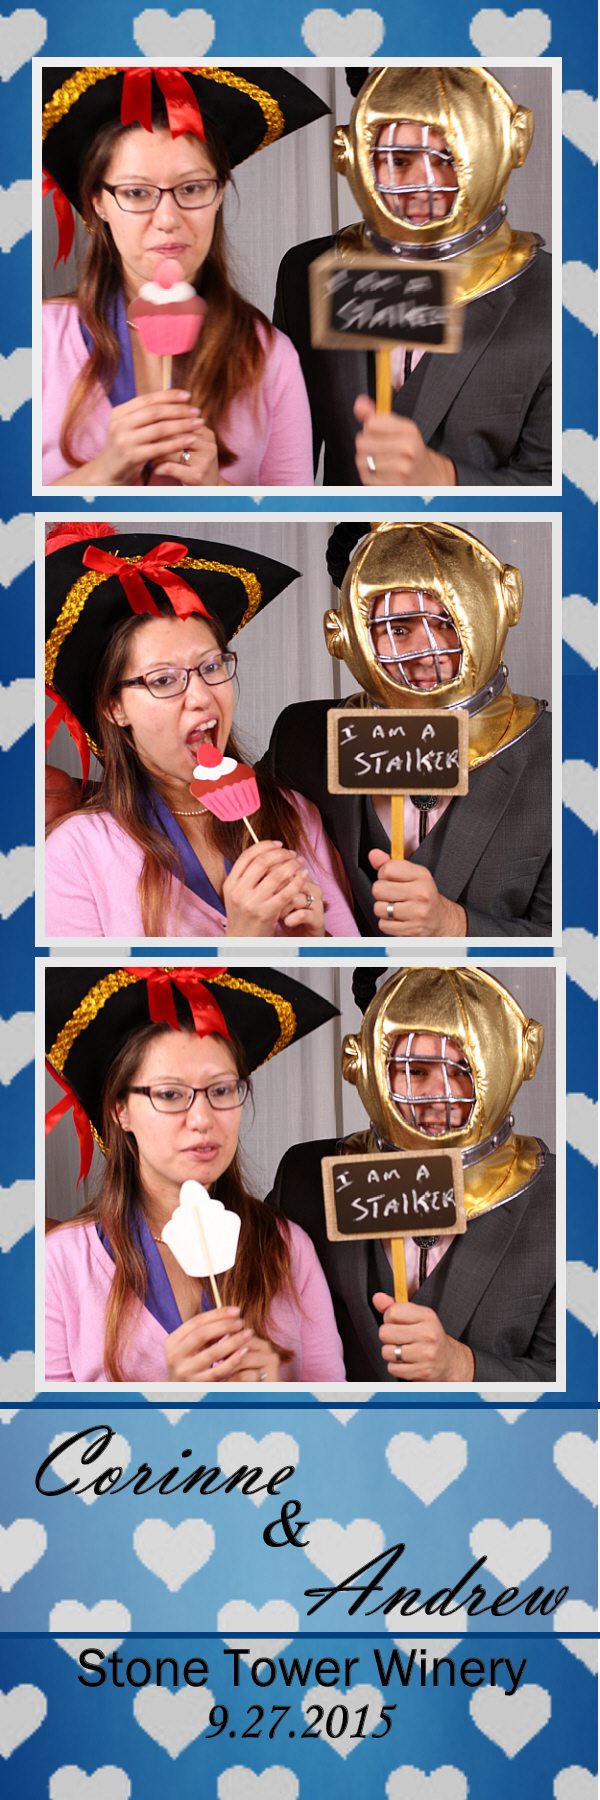 Guest House Events Photo Booth C&A (20).jpg